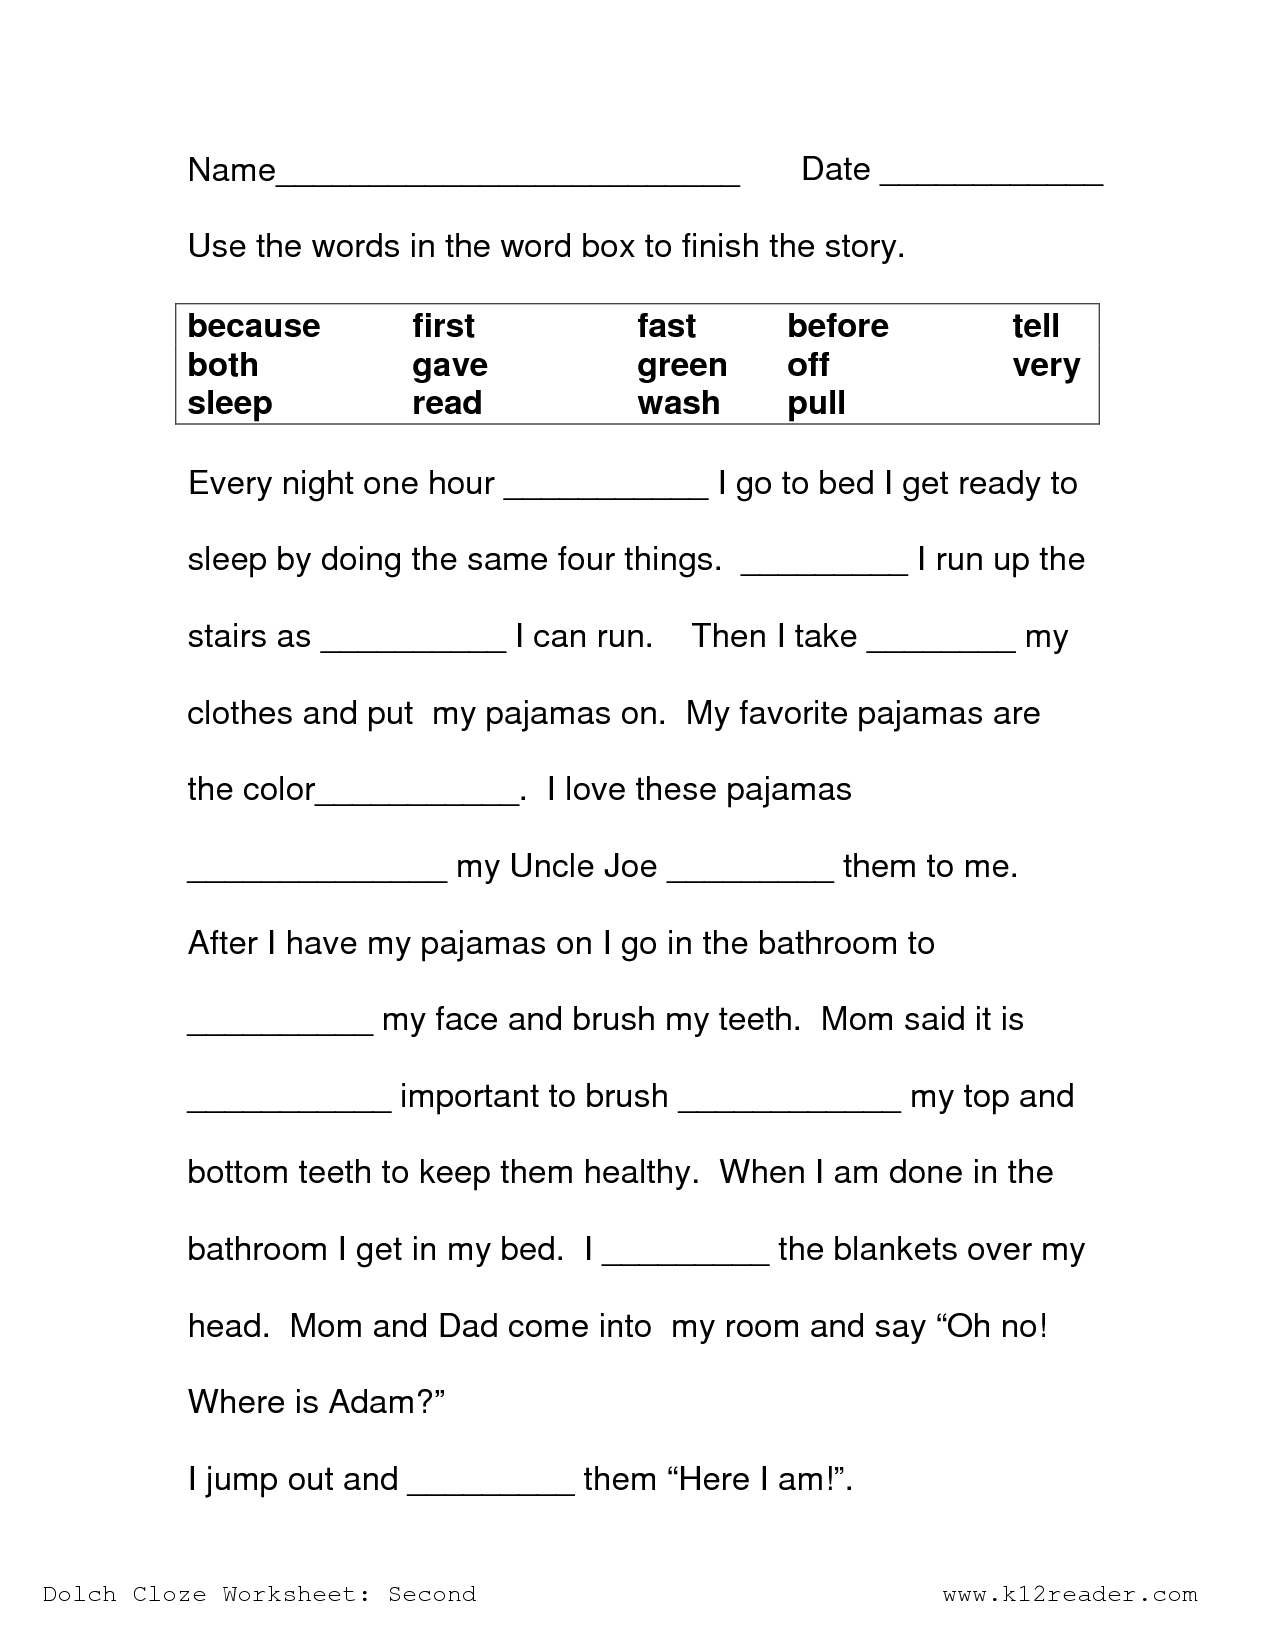 8 Best Images of Printable Reading Worksheets For 2nd Grade - Free ...